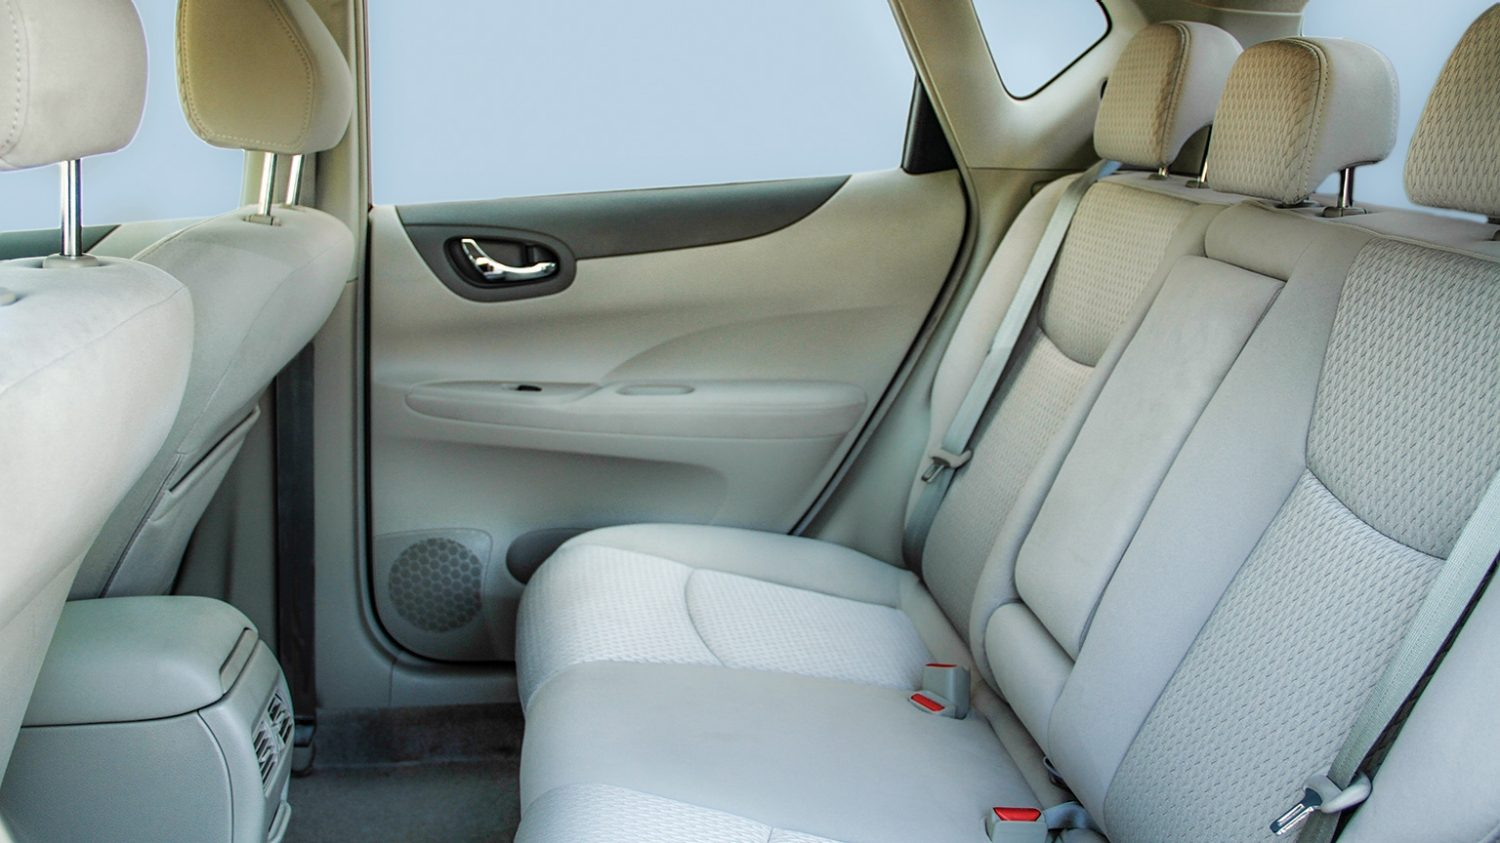 Interior Profile of Rear Seats with Sky Background